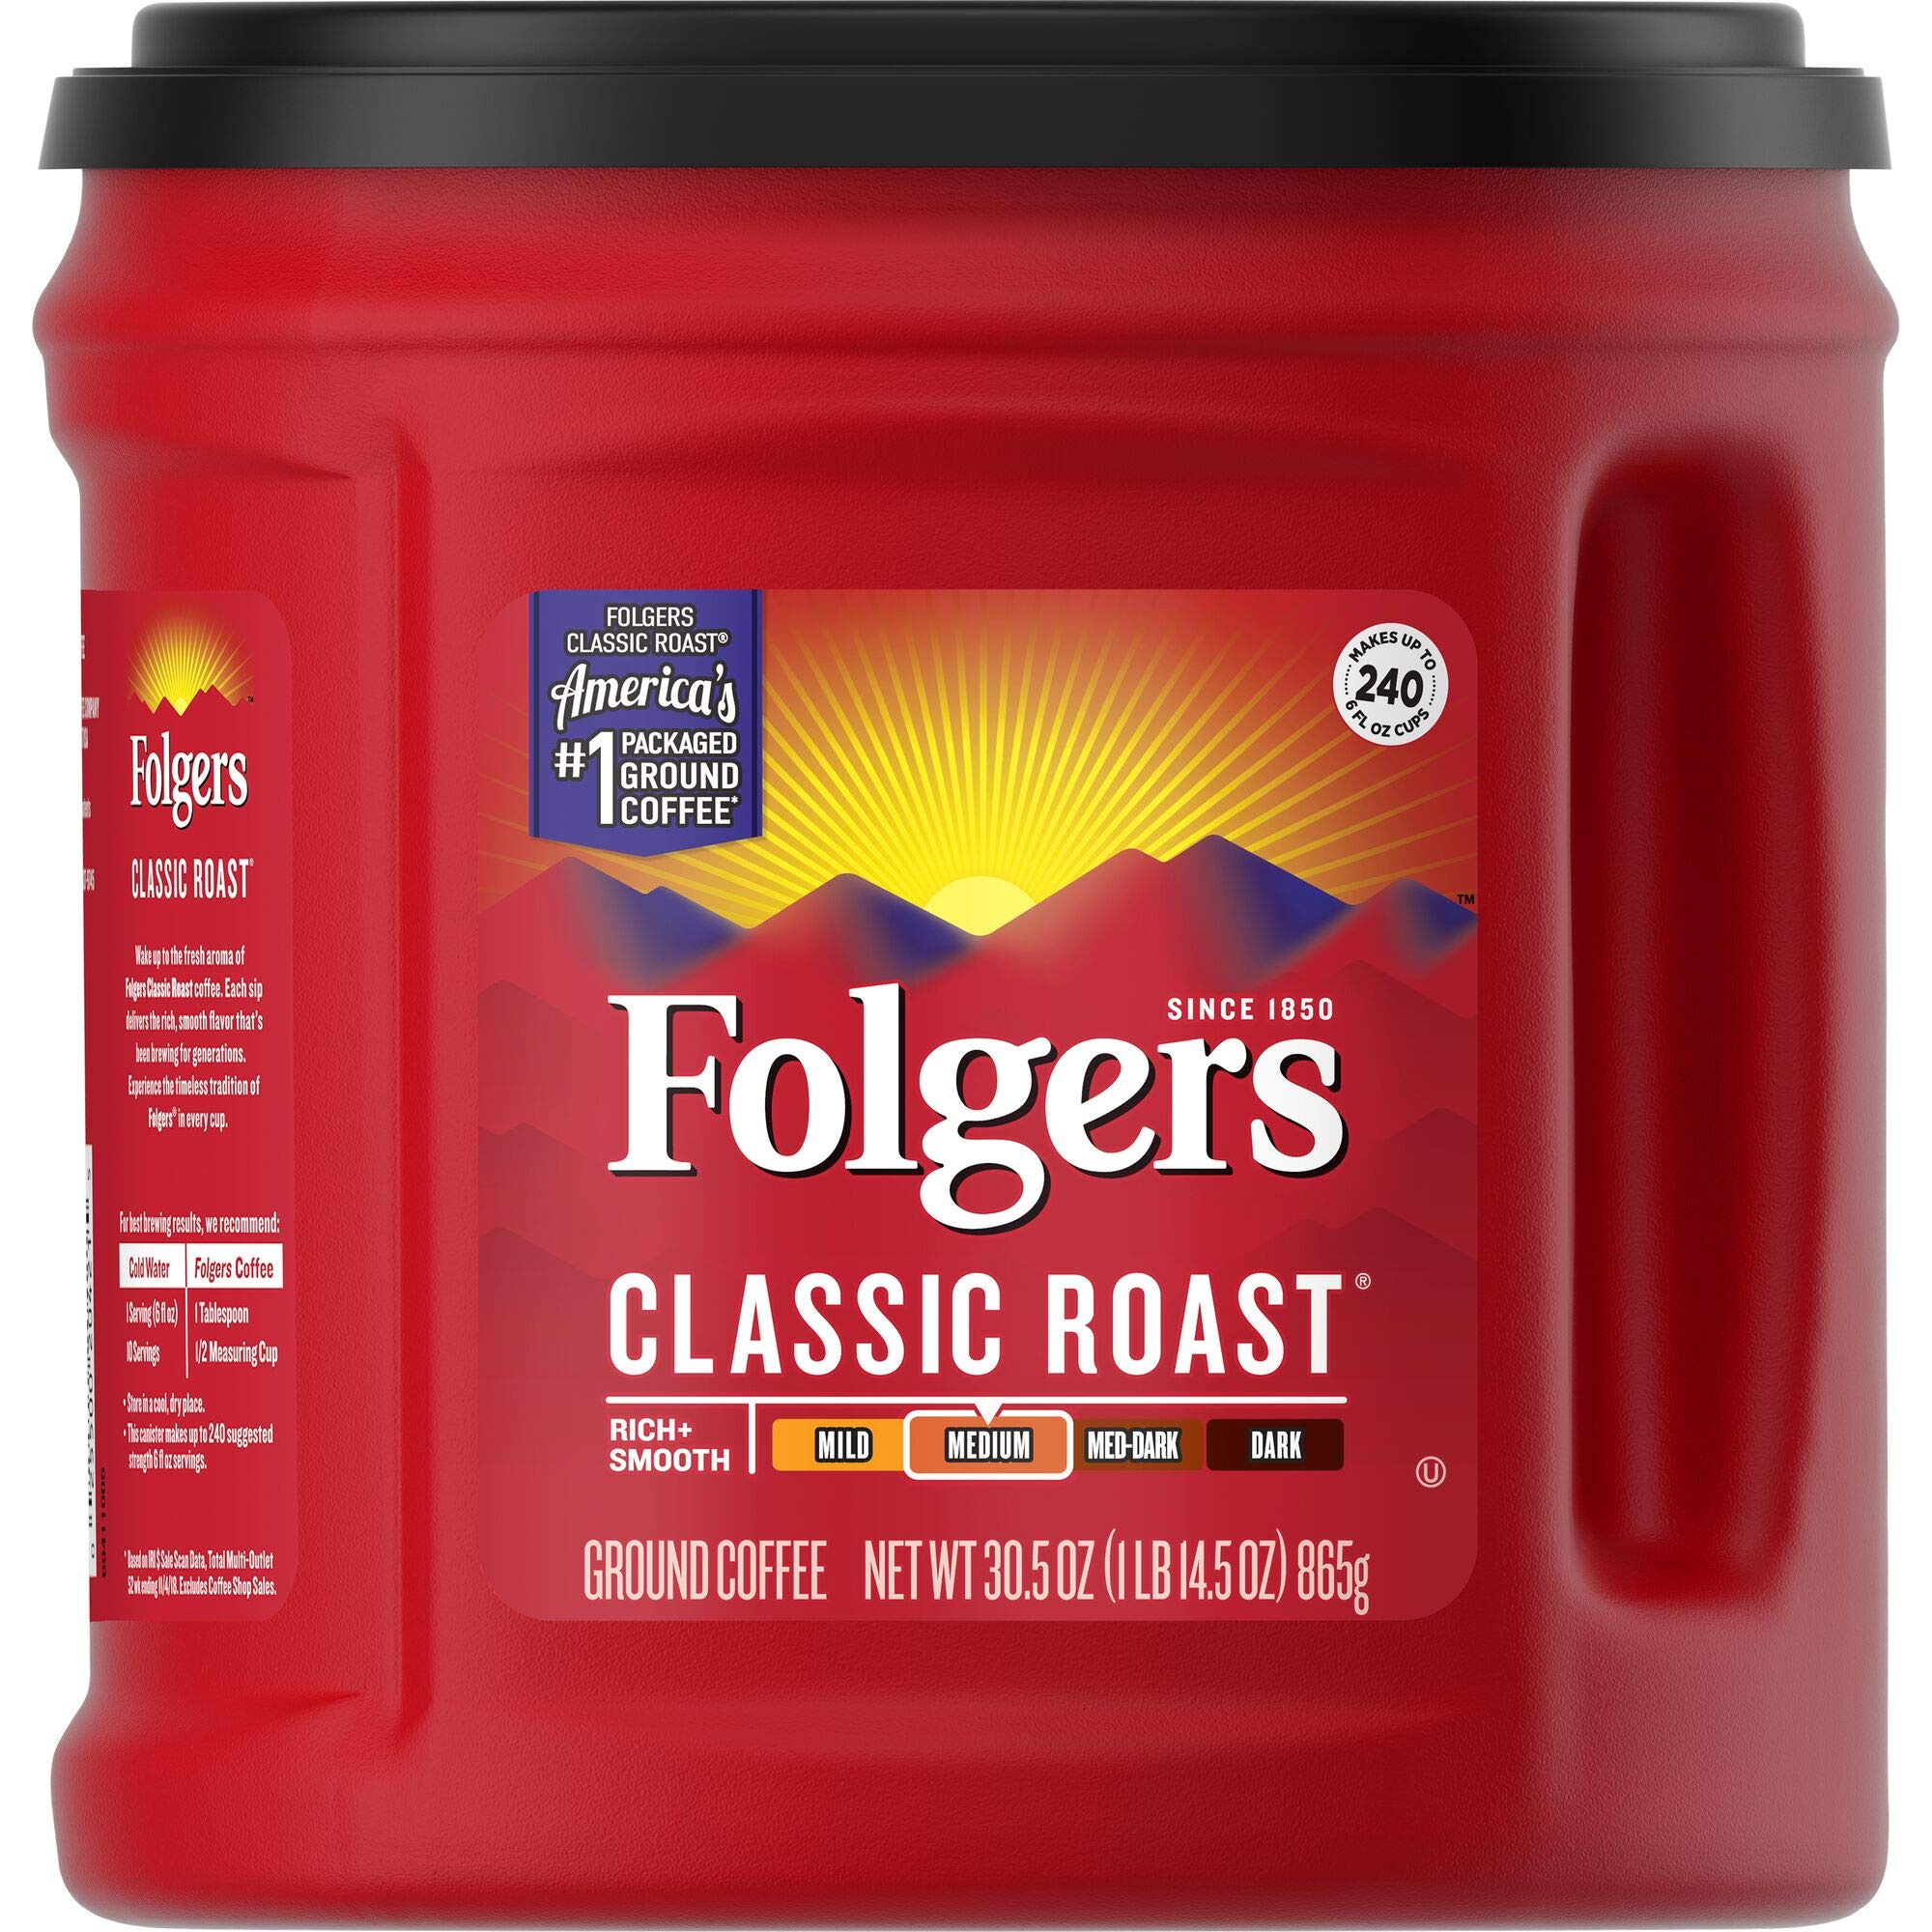 Folgers Classic Roast Ground Coffee, Medium Roast, 30.5 Ounce (Pack of 6), Packaging May Vary by Folgers